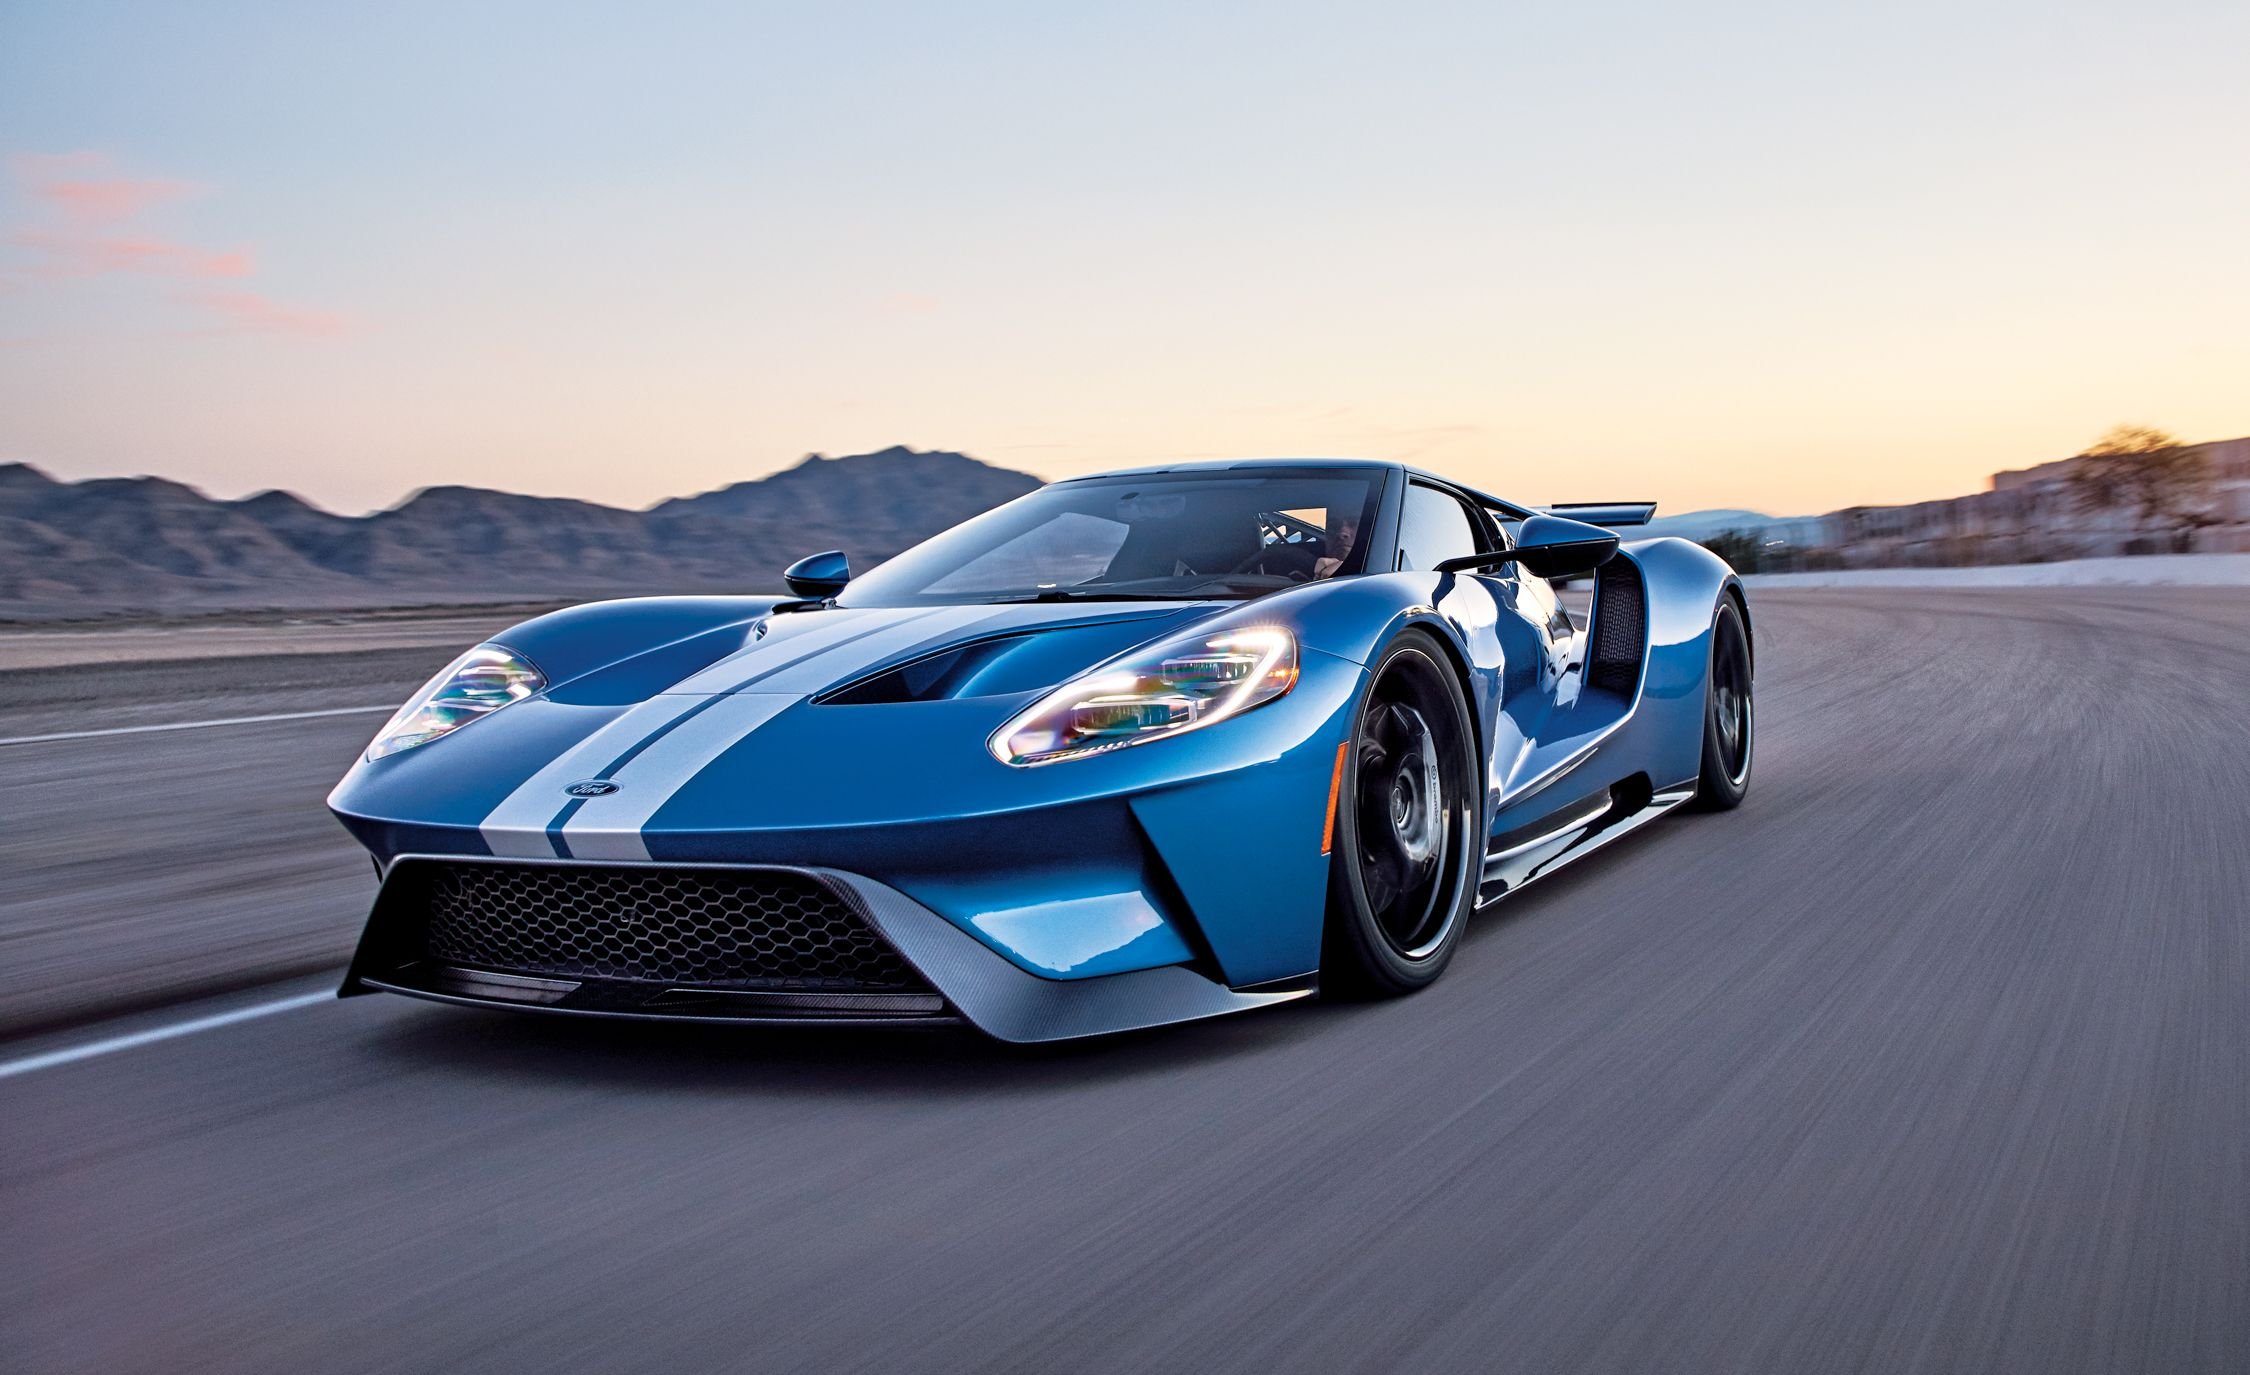 Ford Gt 2017 Wow Ford Gt Ford Gt 2017 Super Cars